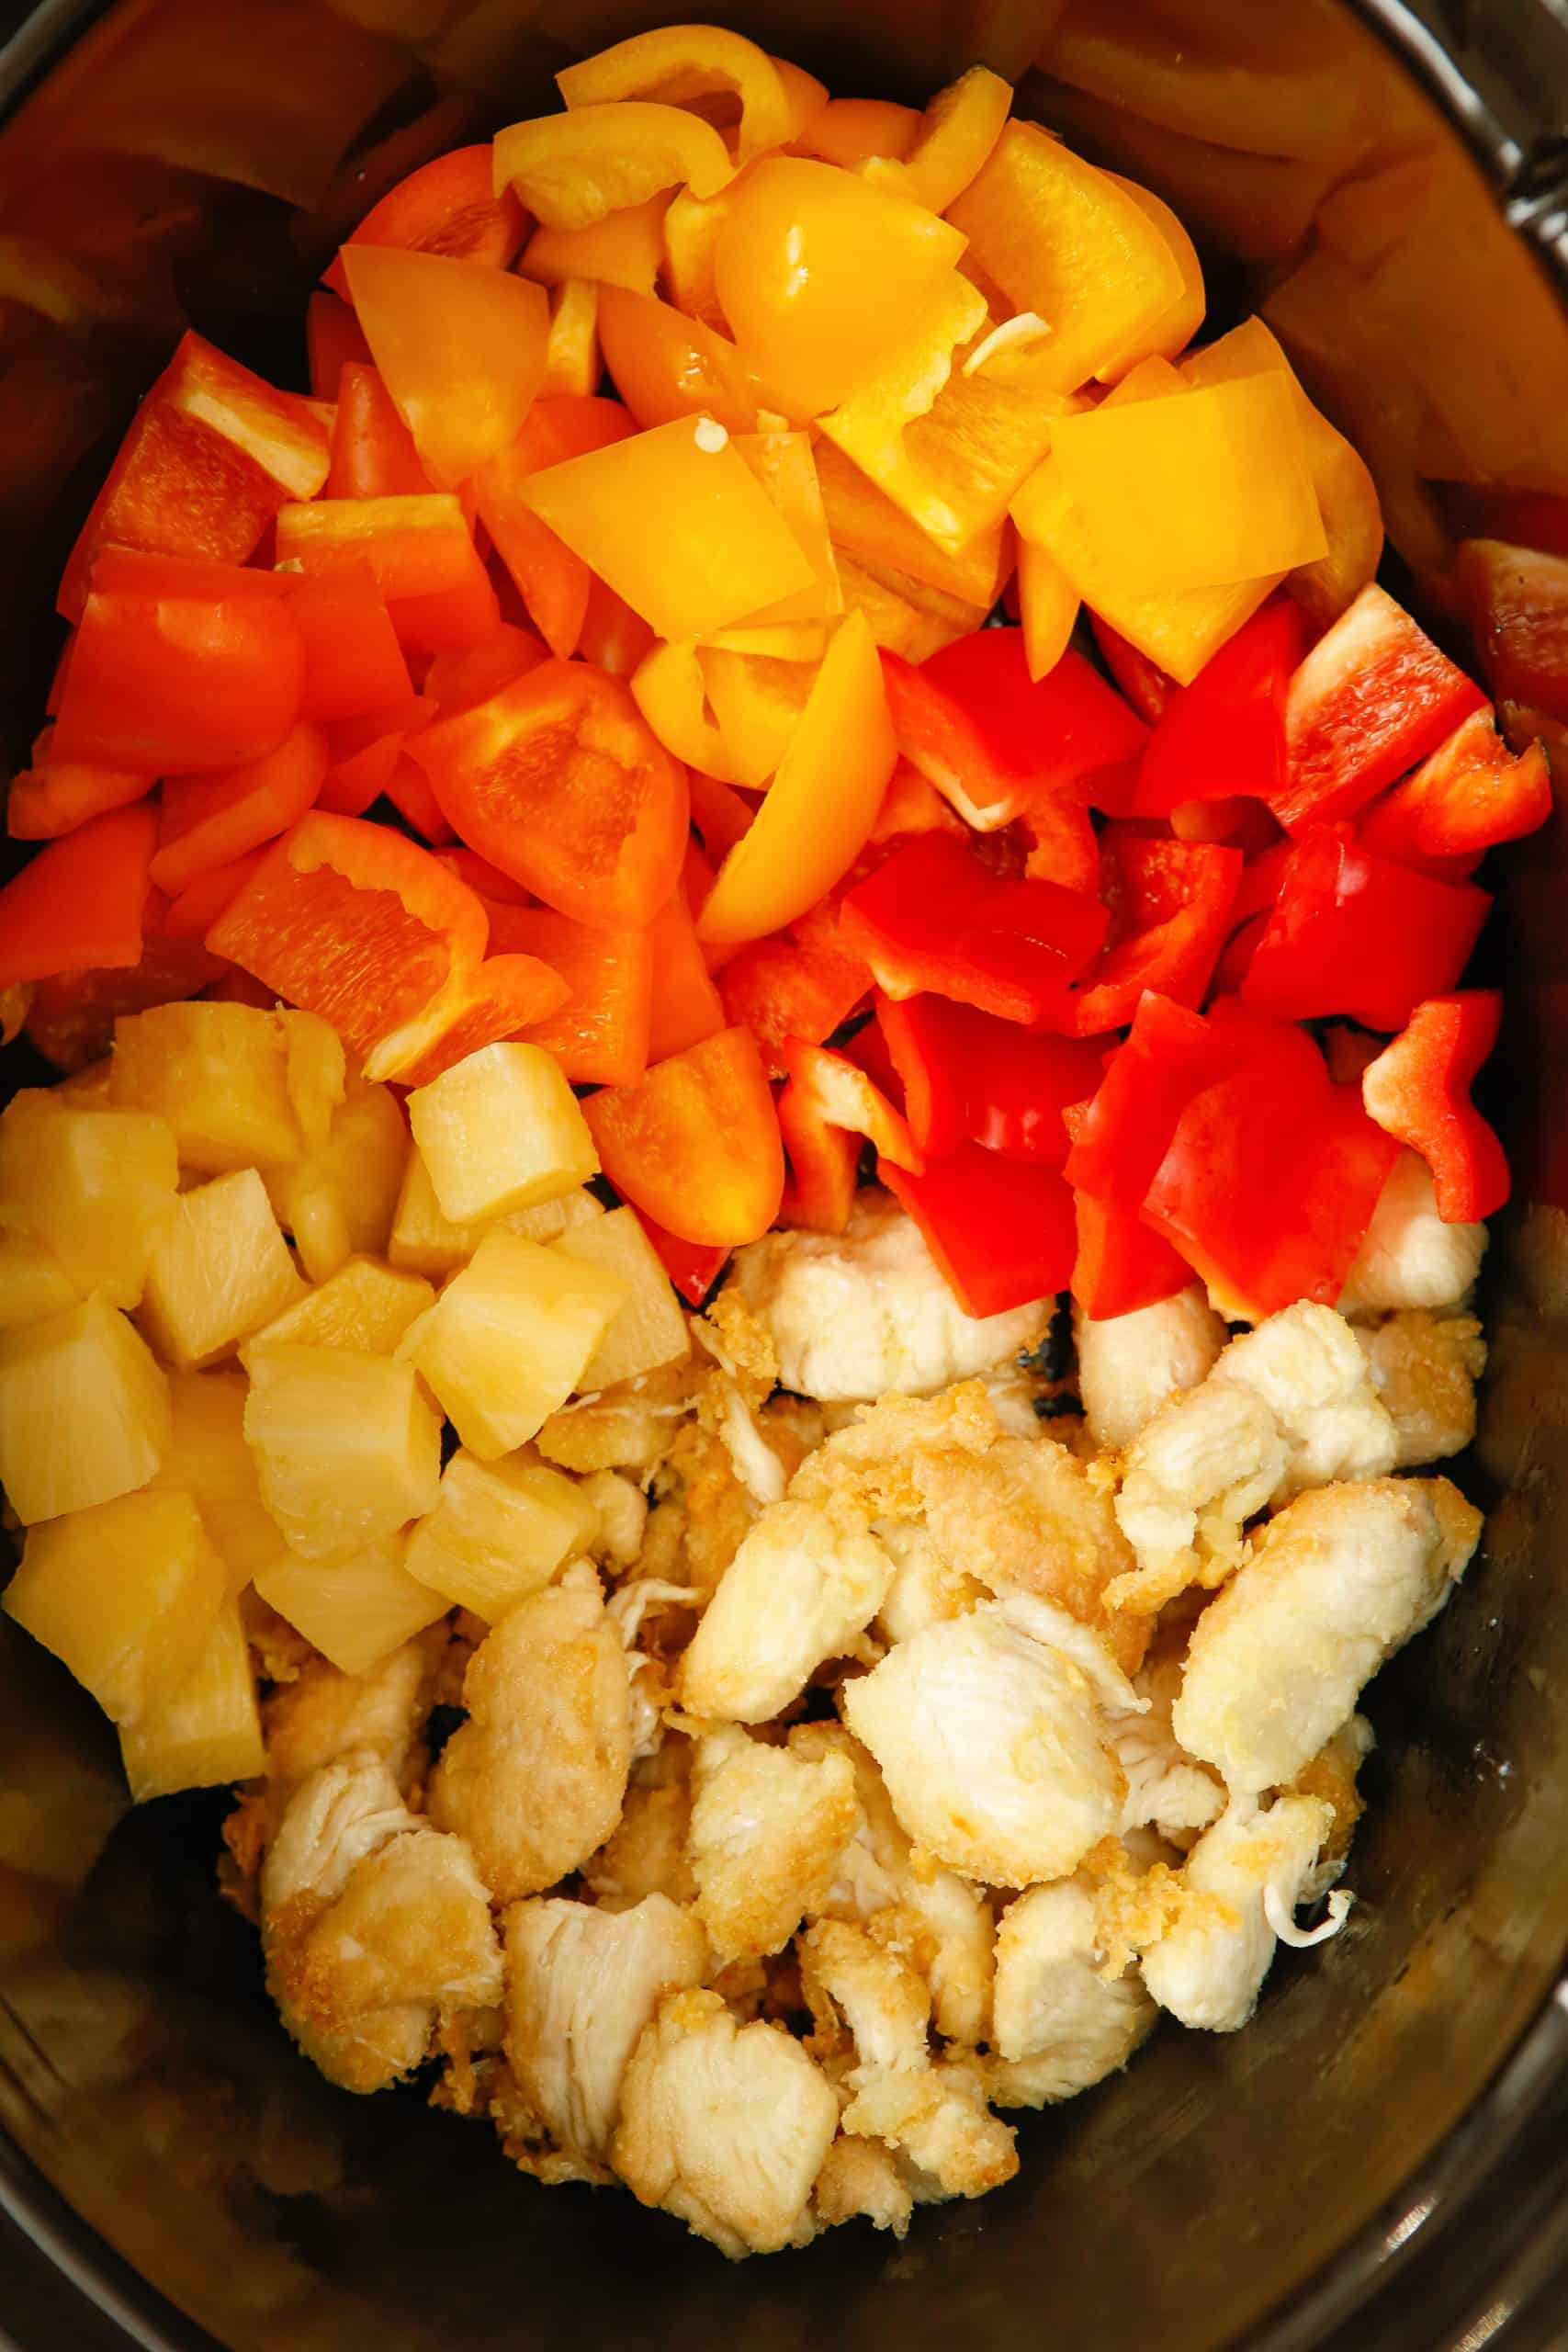 diced fried chicken, diced bell peppers and pineapple chunks in the bottom of an oval slow cooker.